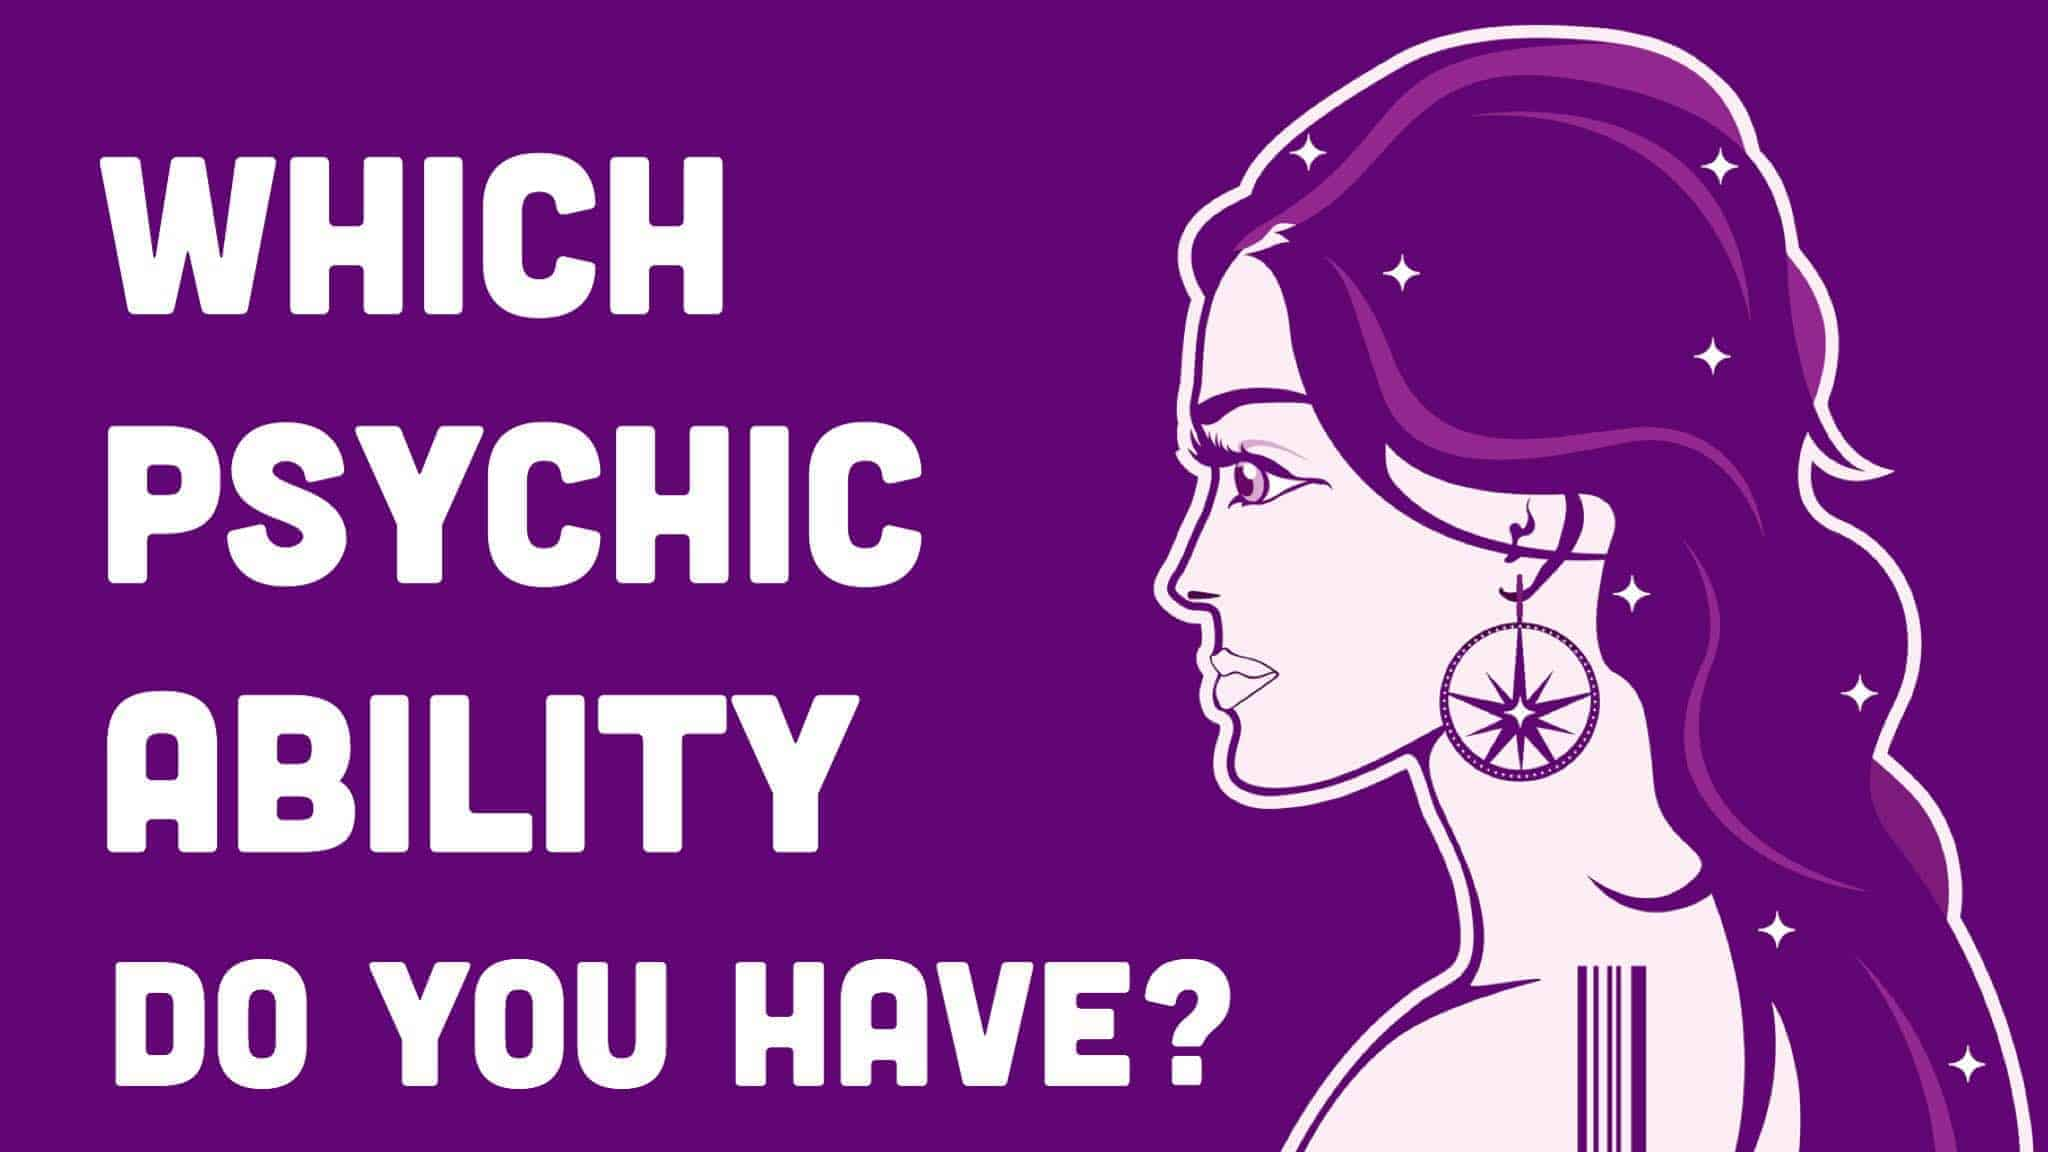 psychic ability